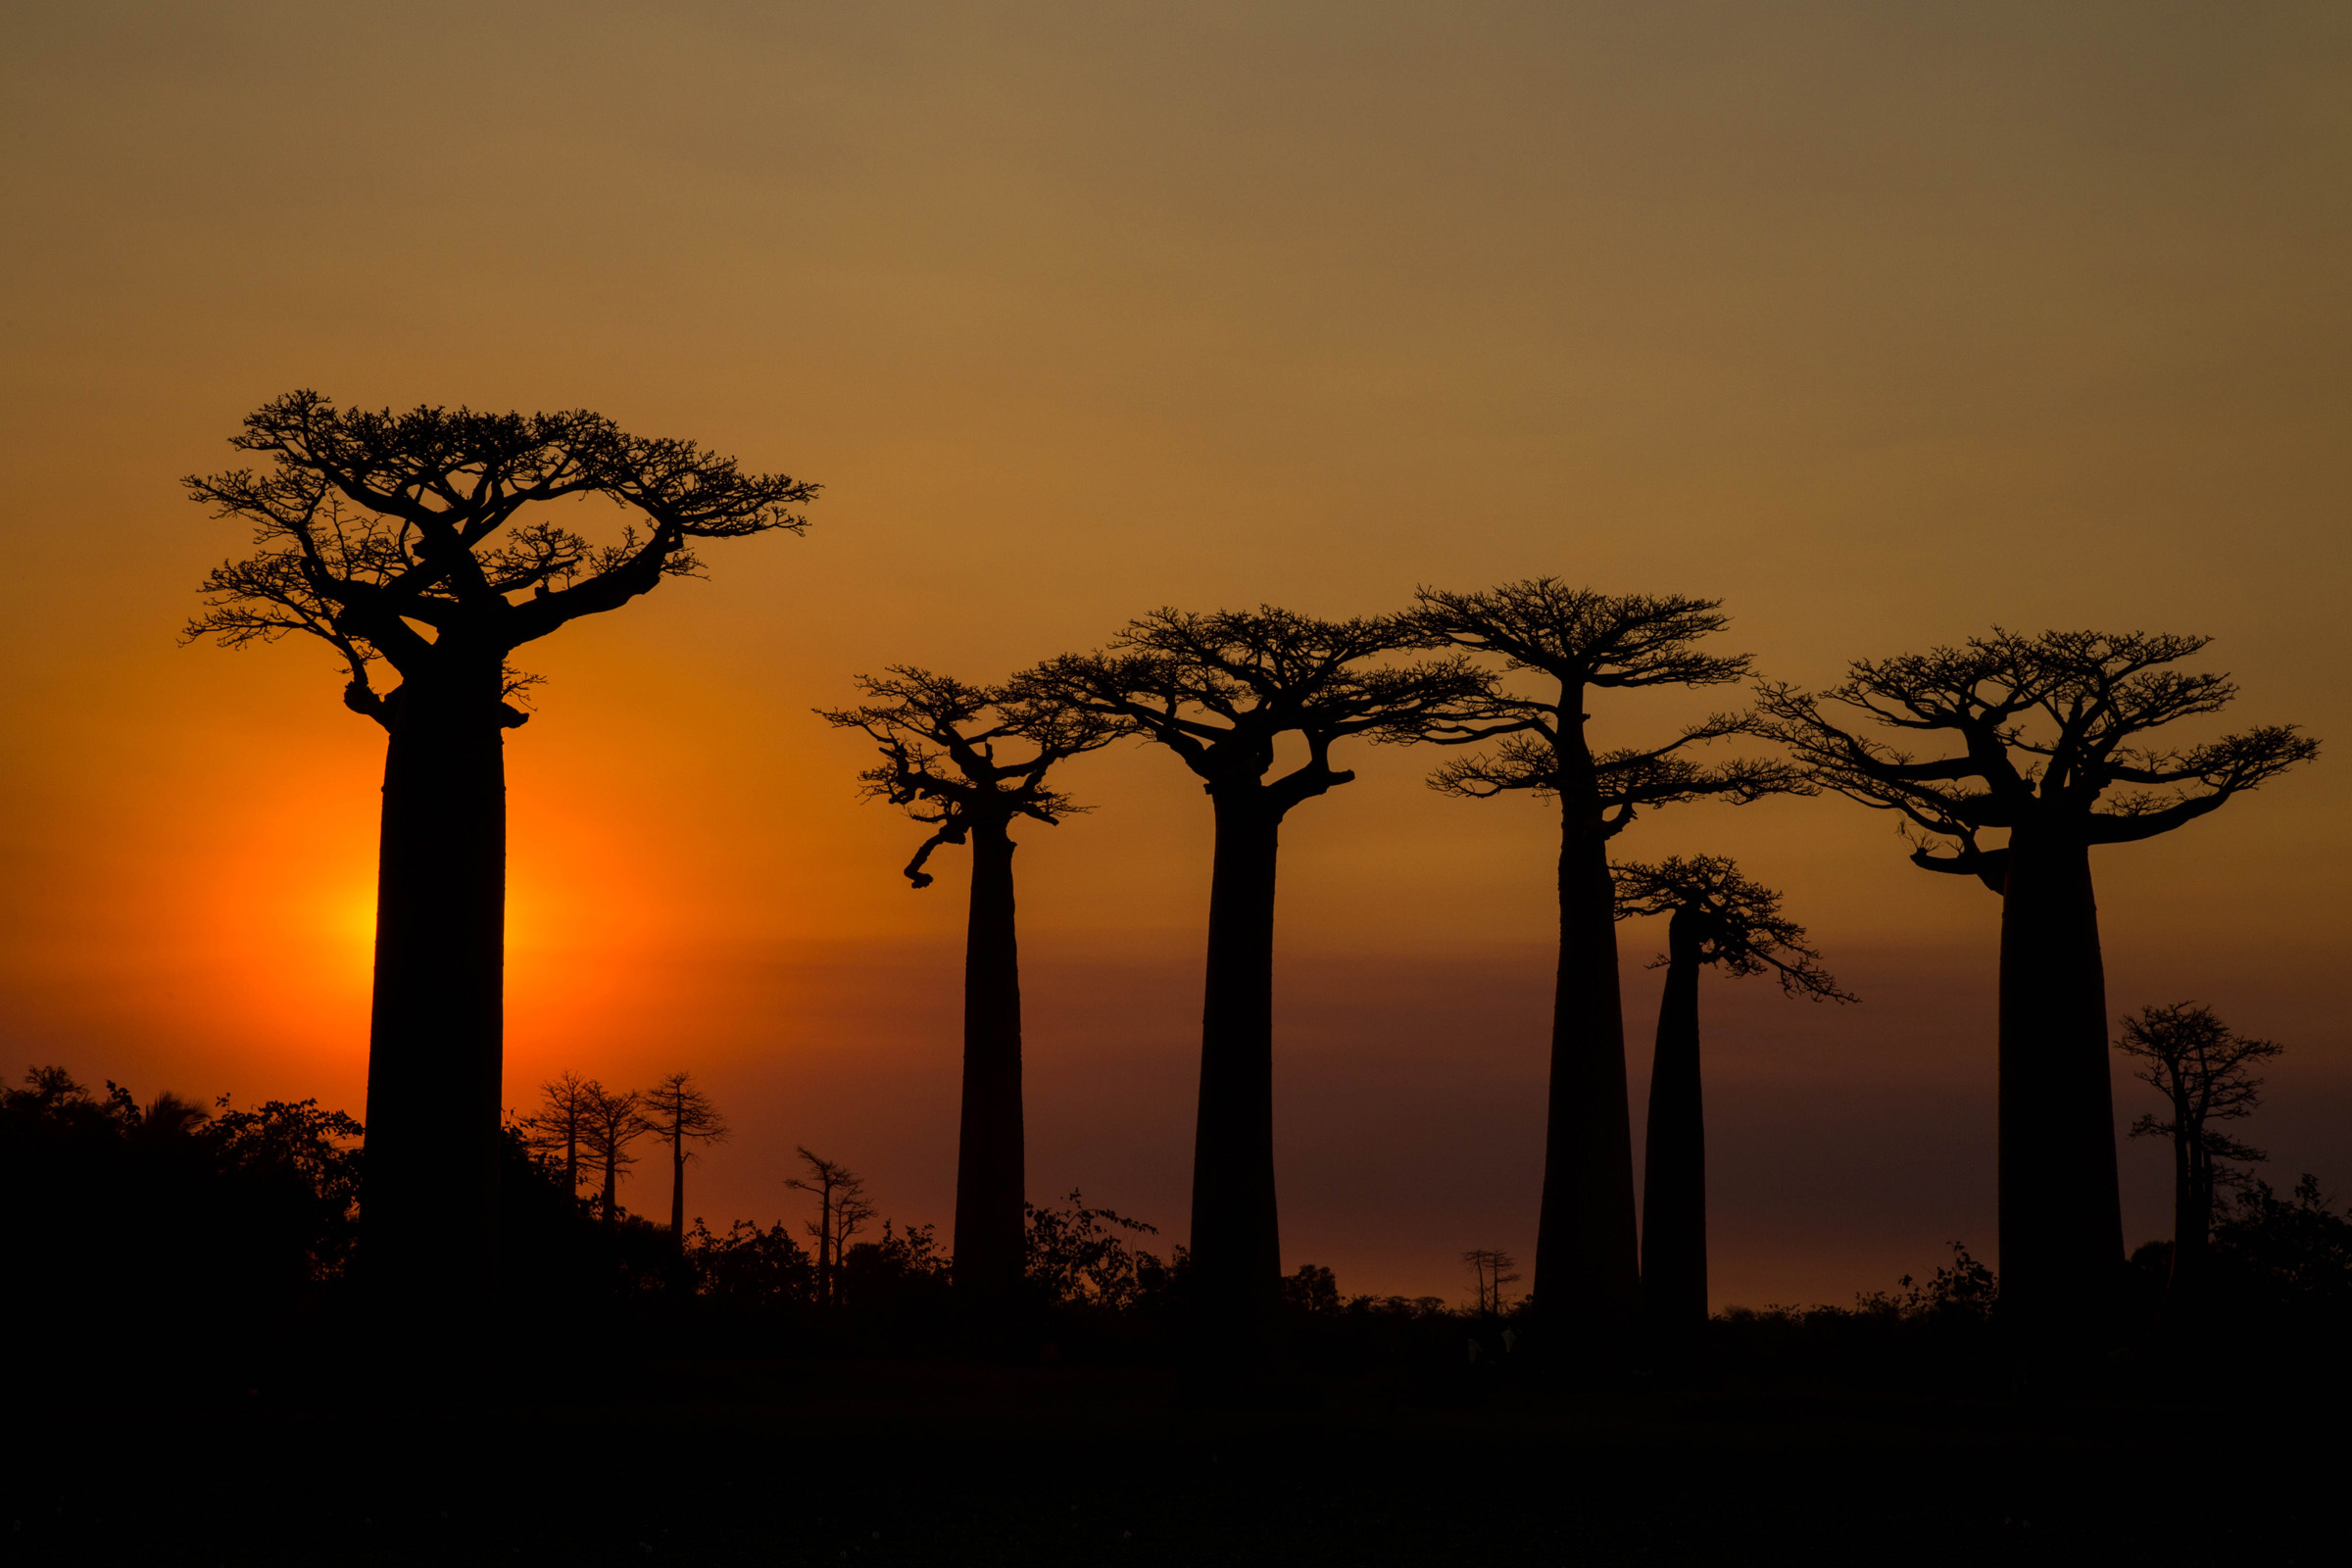 Baobab trees in Madagascar - by Paul Lester